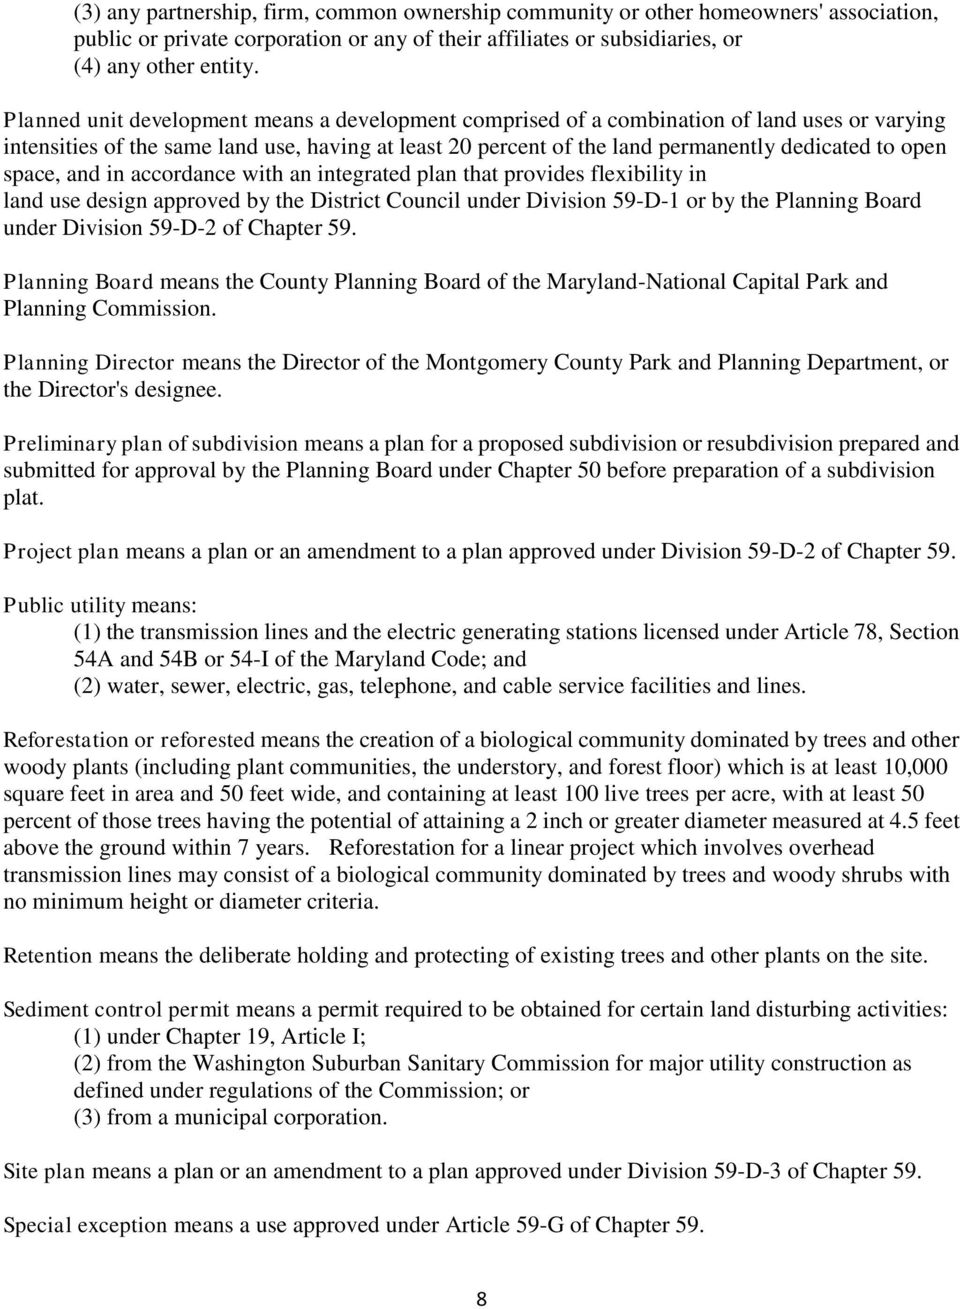 space, and in accordance with an integrated plan that provides flexibility in land use design approved by the District Council under Division 59-D-1 or by the Planning Board under Division 59-D-2 of